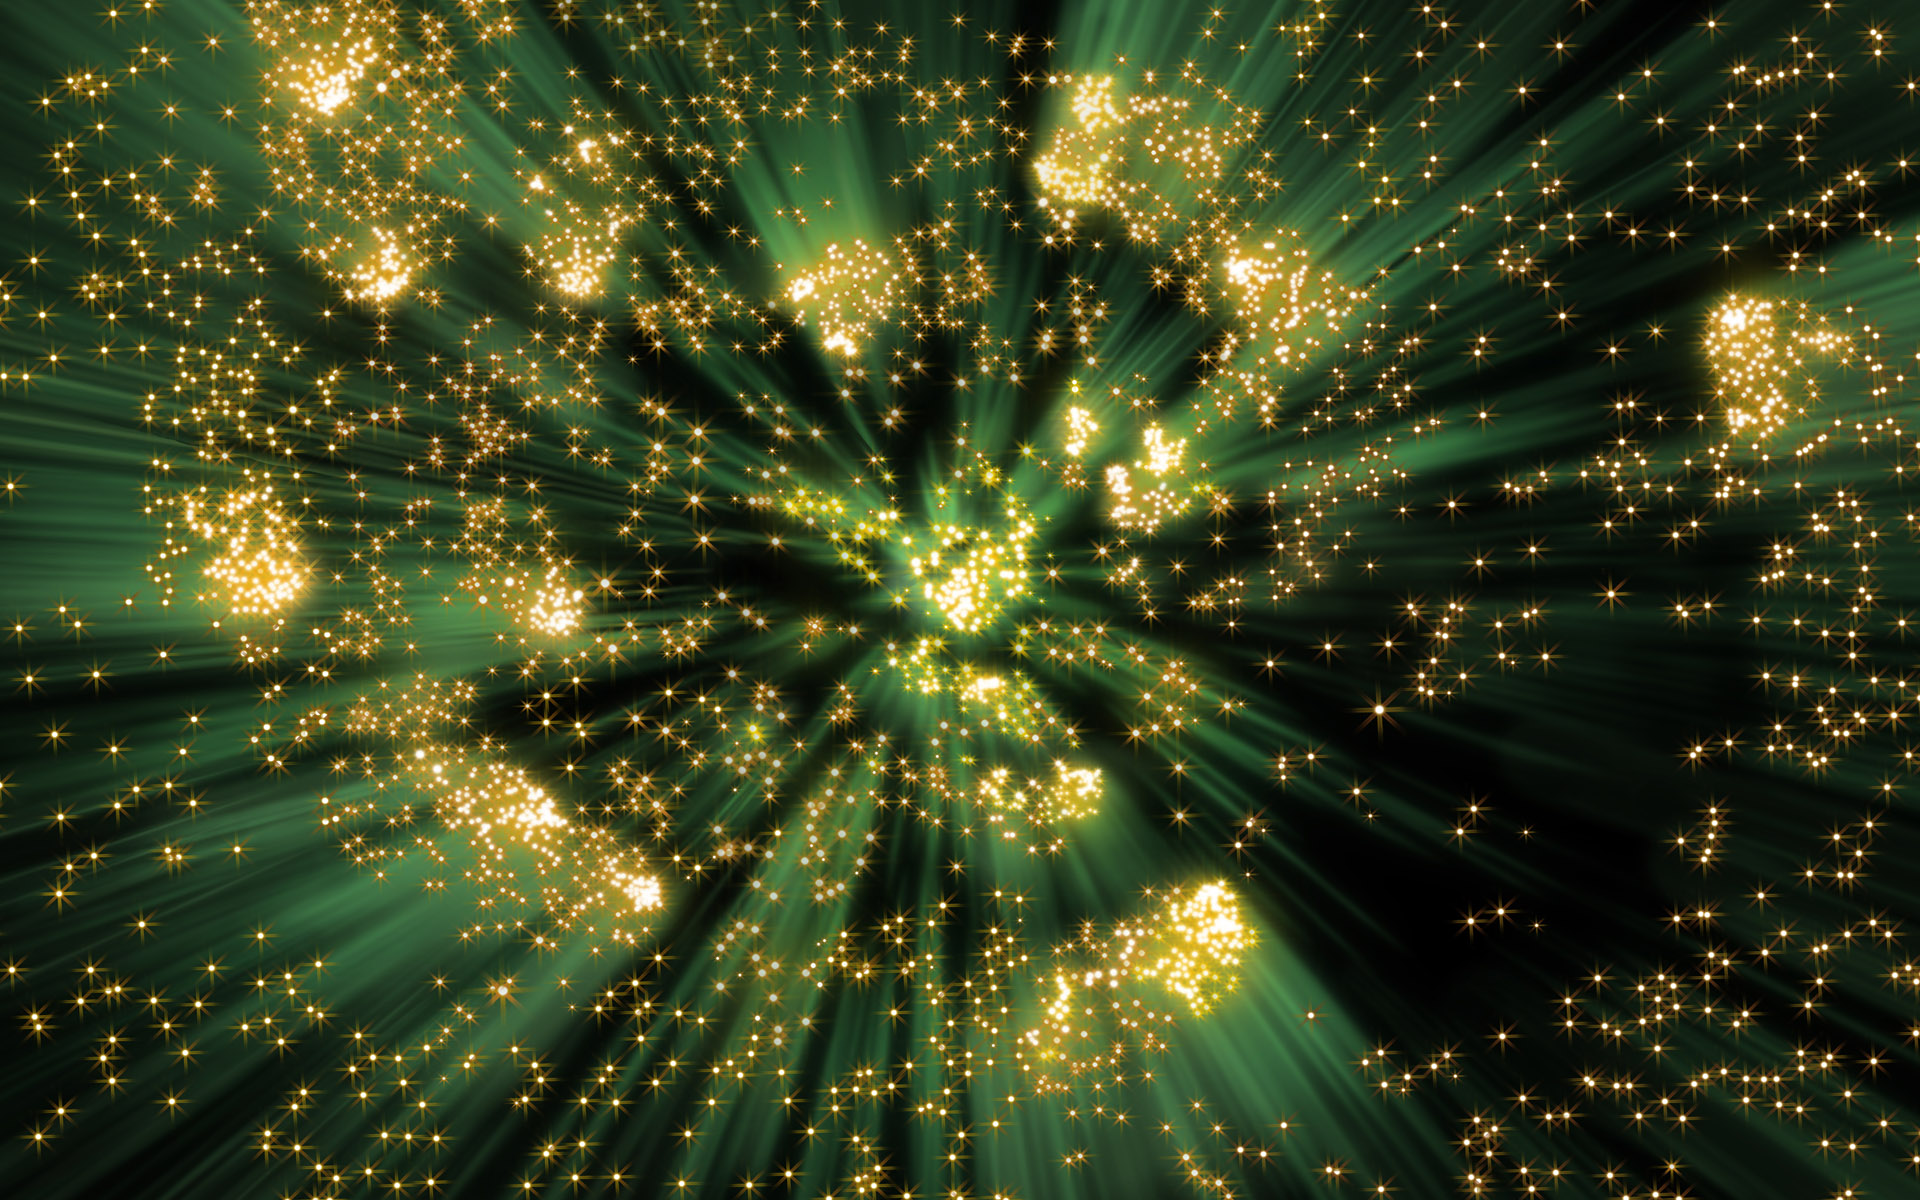 Green With Gold Sparkles HD Wallpaper Background Image